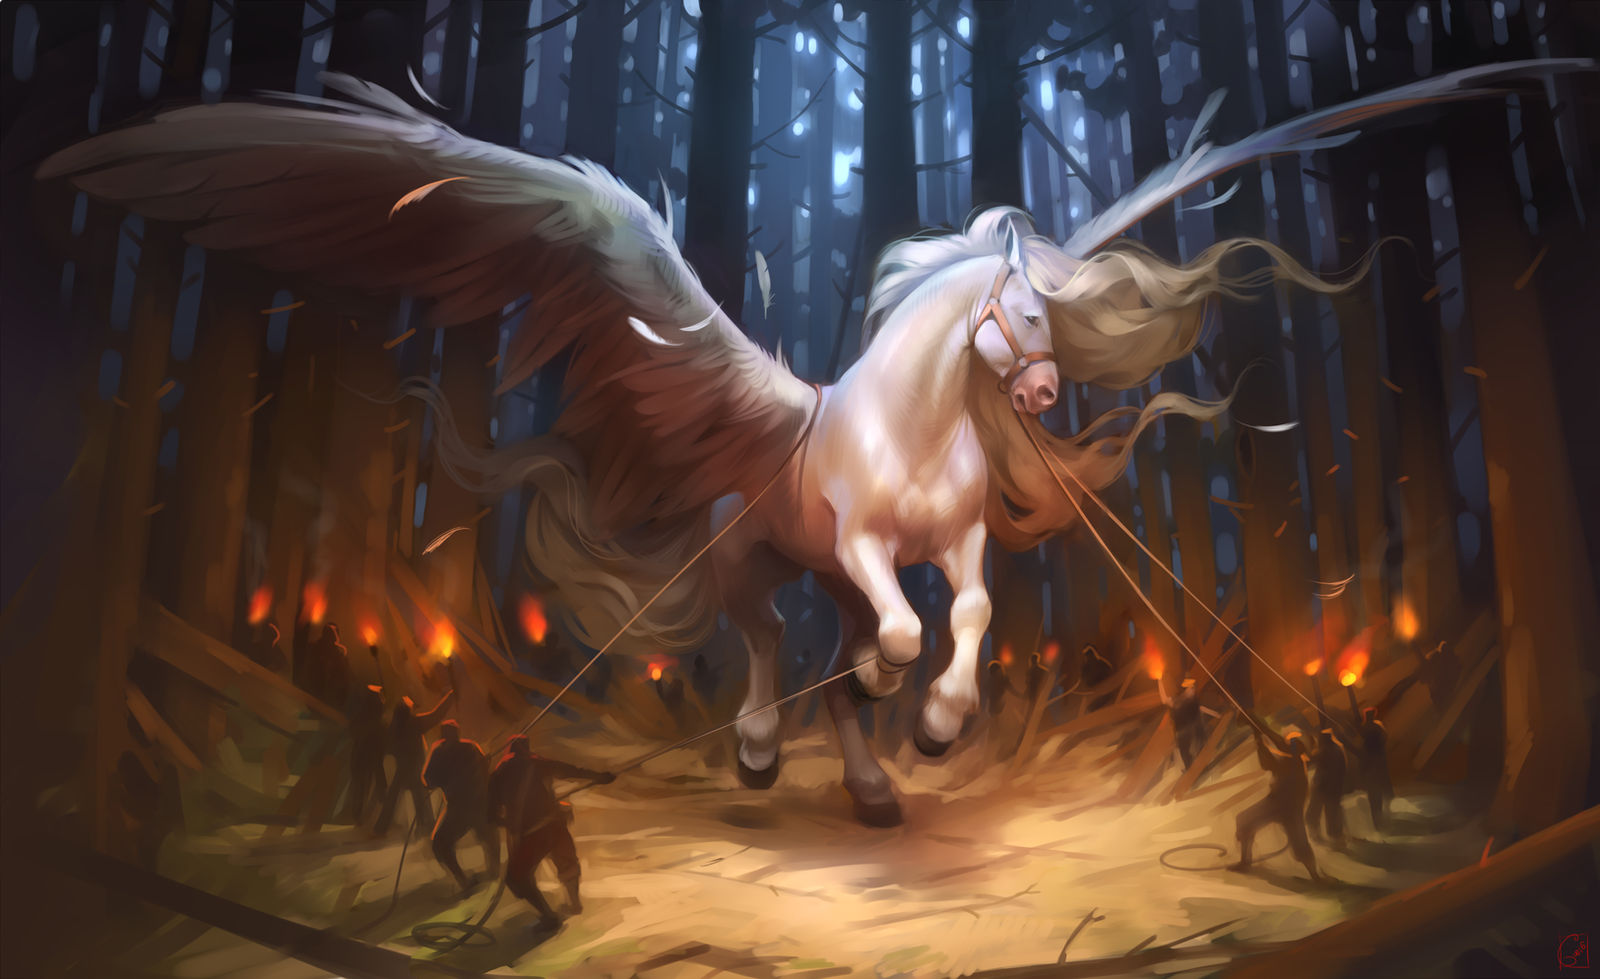 Pegasus of the chariot of the gods